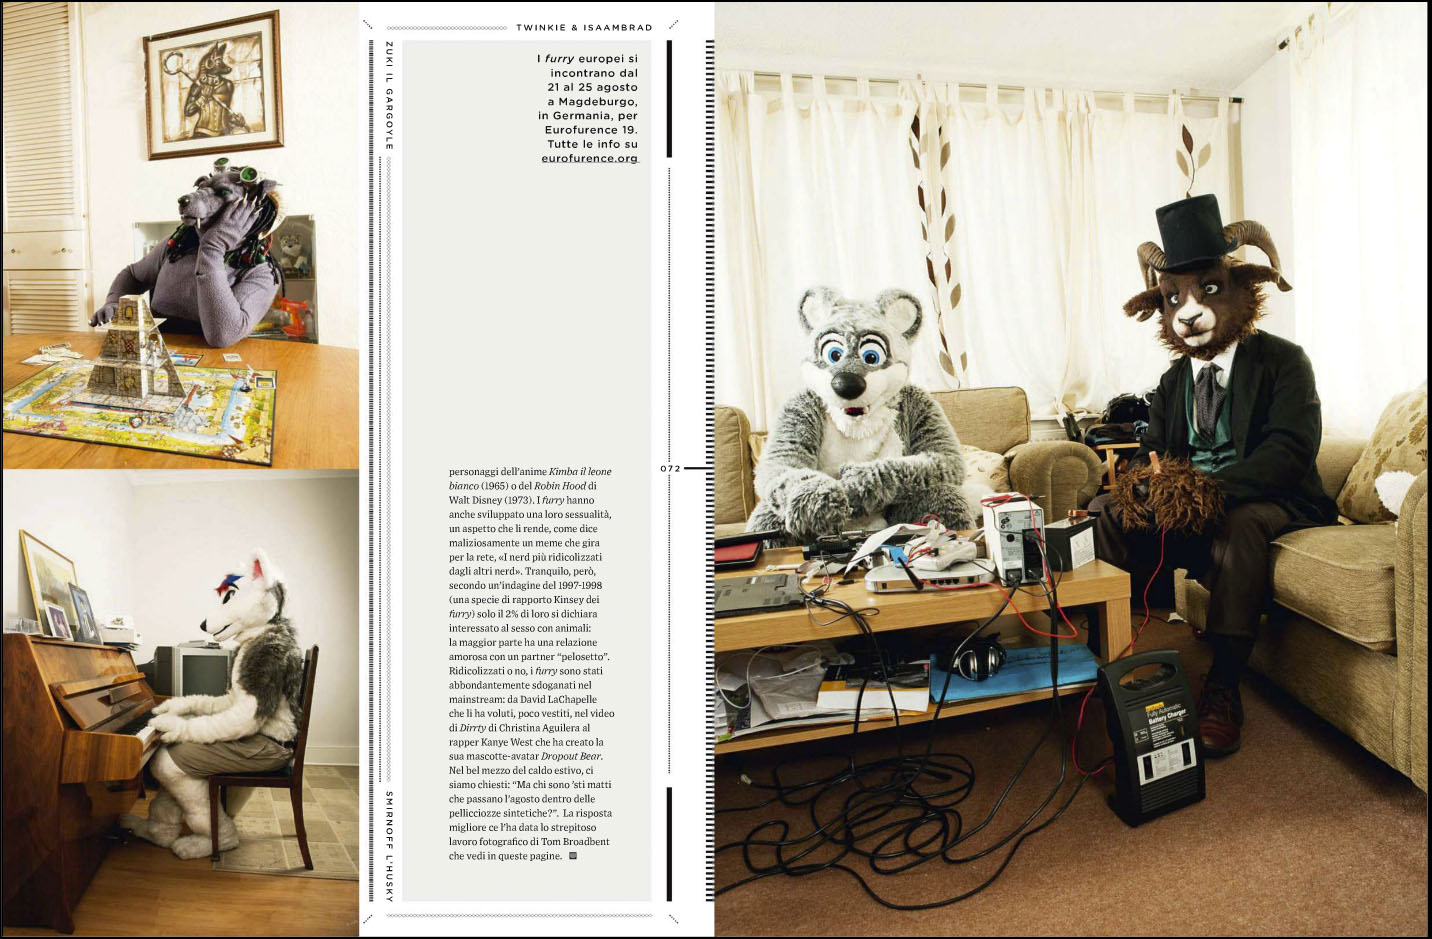 At Home With The Furries and Wired Magazine (Italy) | Broadbentius\' Blog